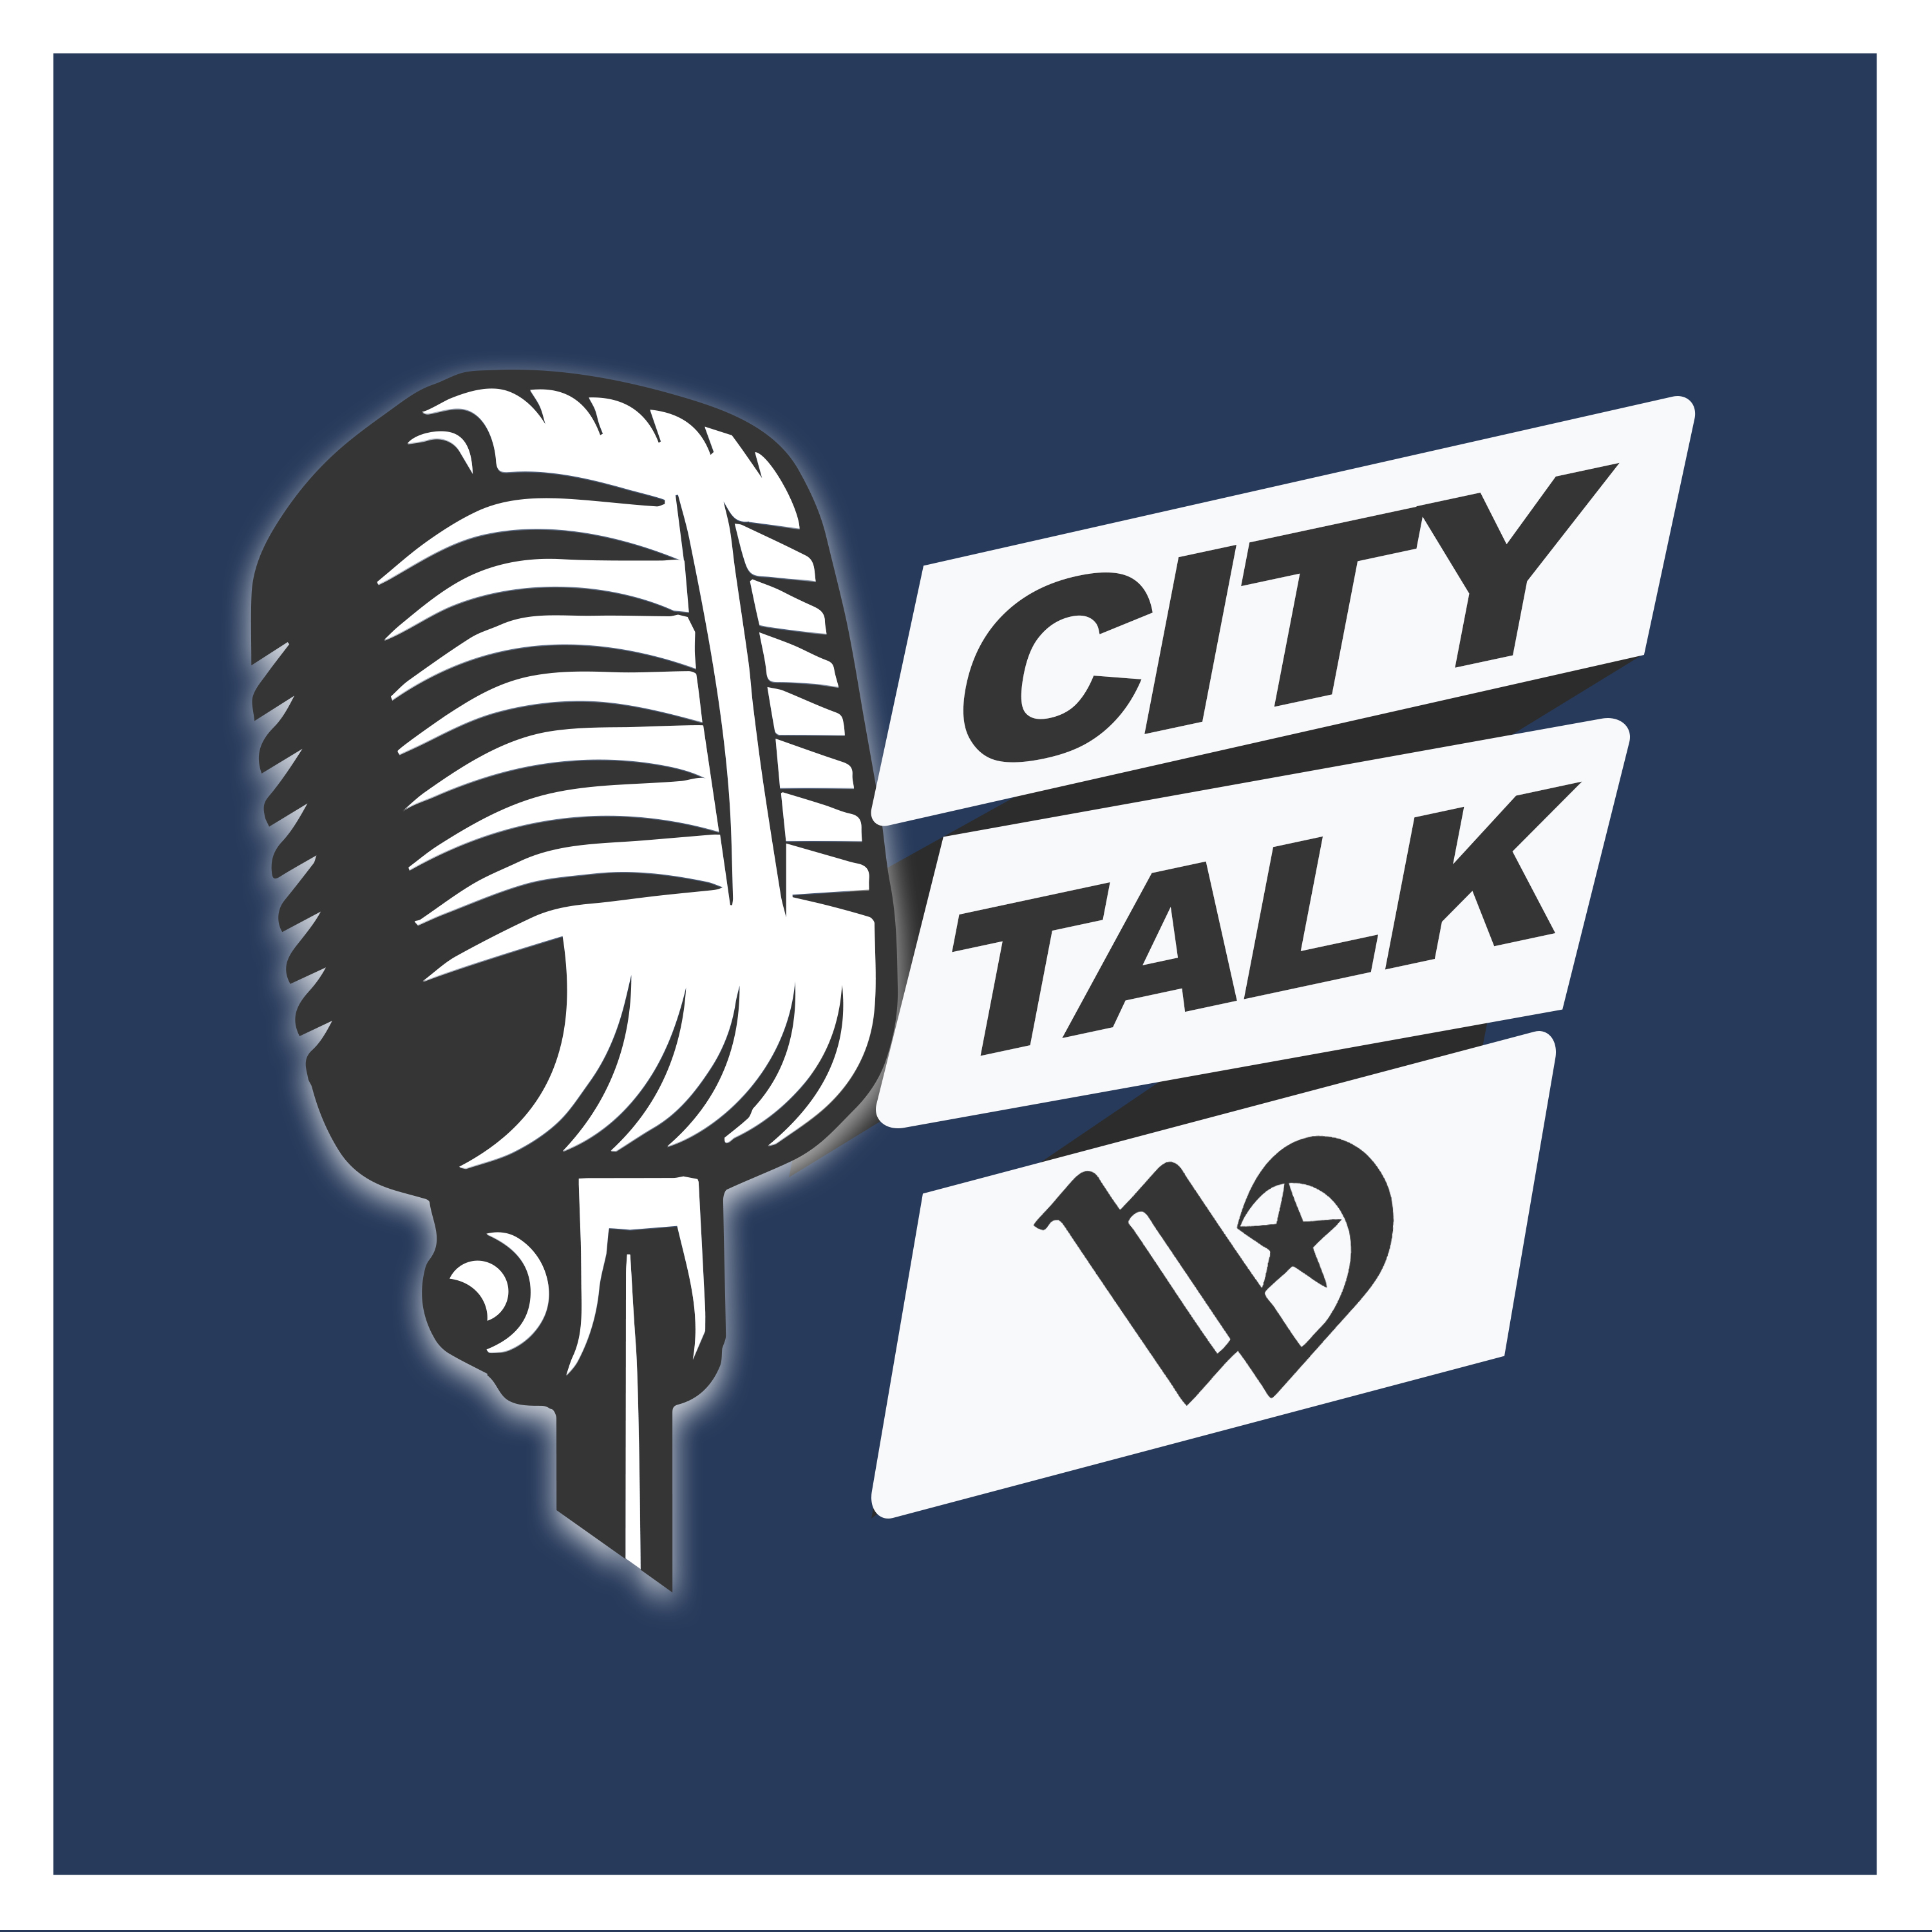 City Talk - January 31, 2021